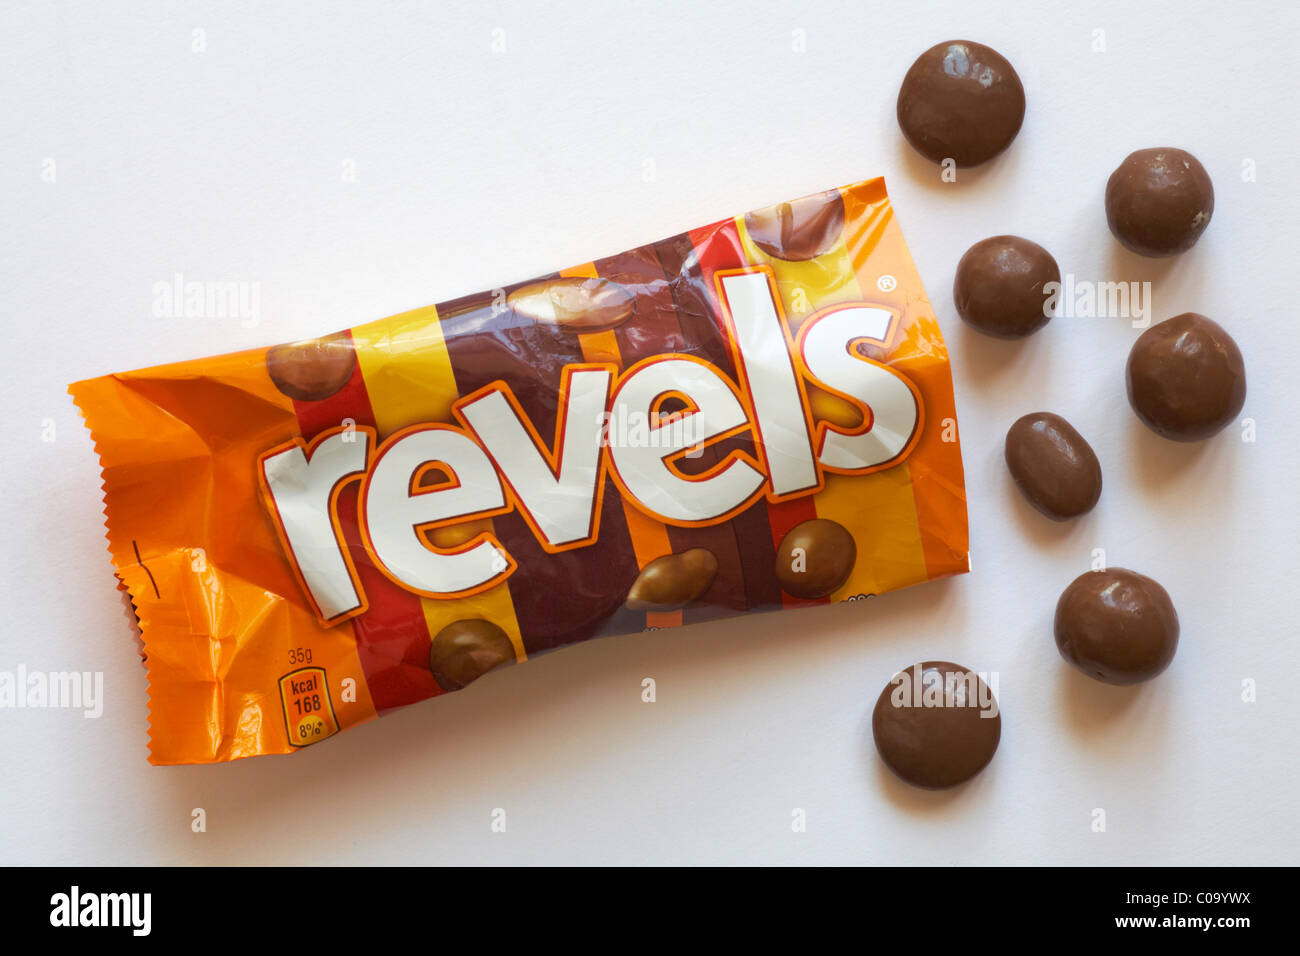 bag of Revels with contents spilled isolated on white background - Stock Image